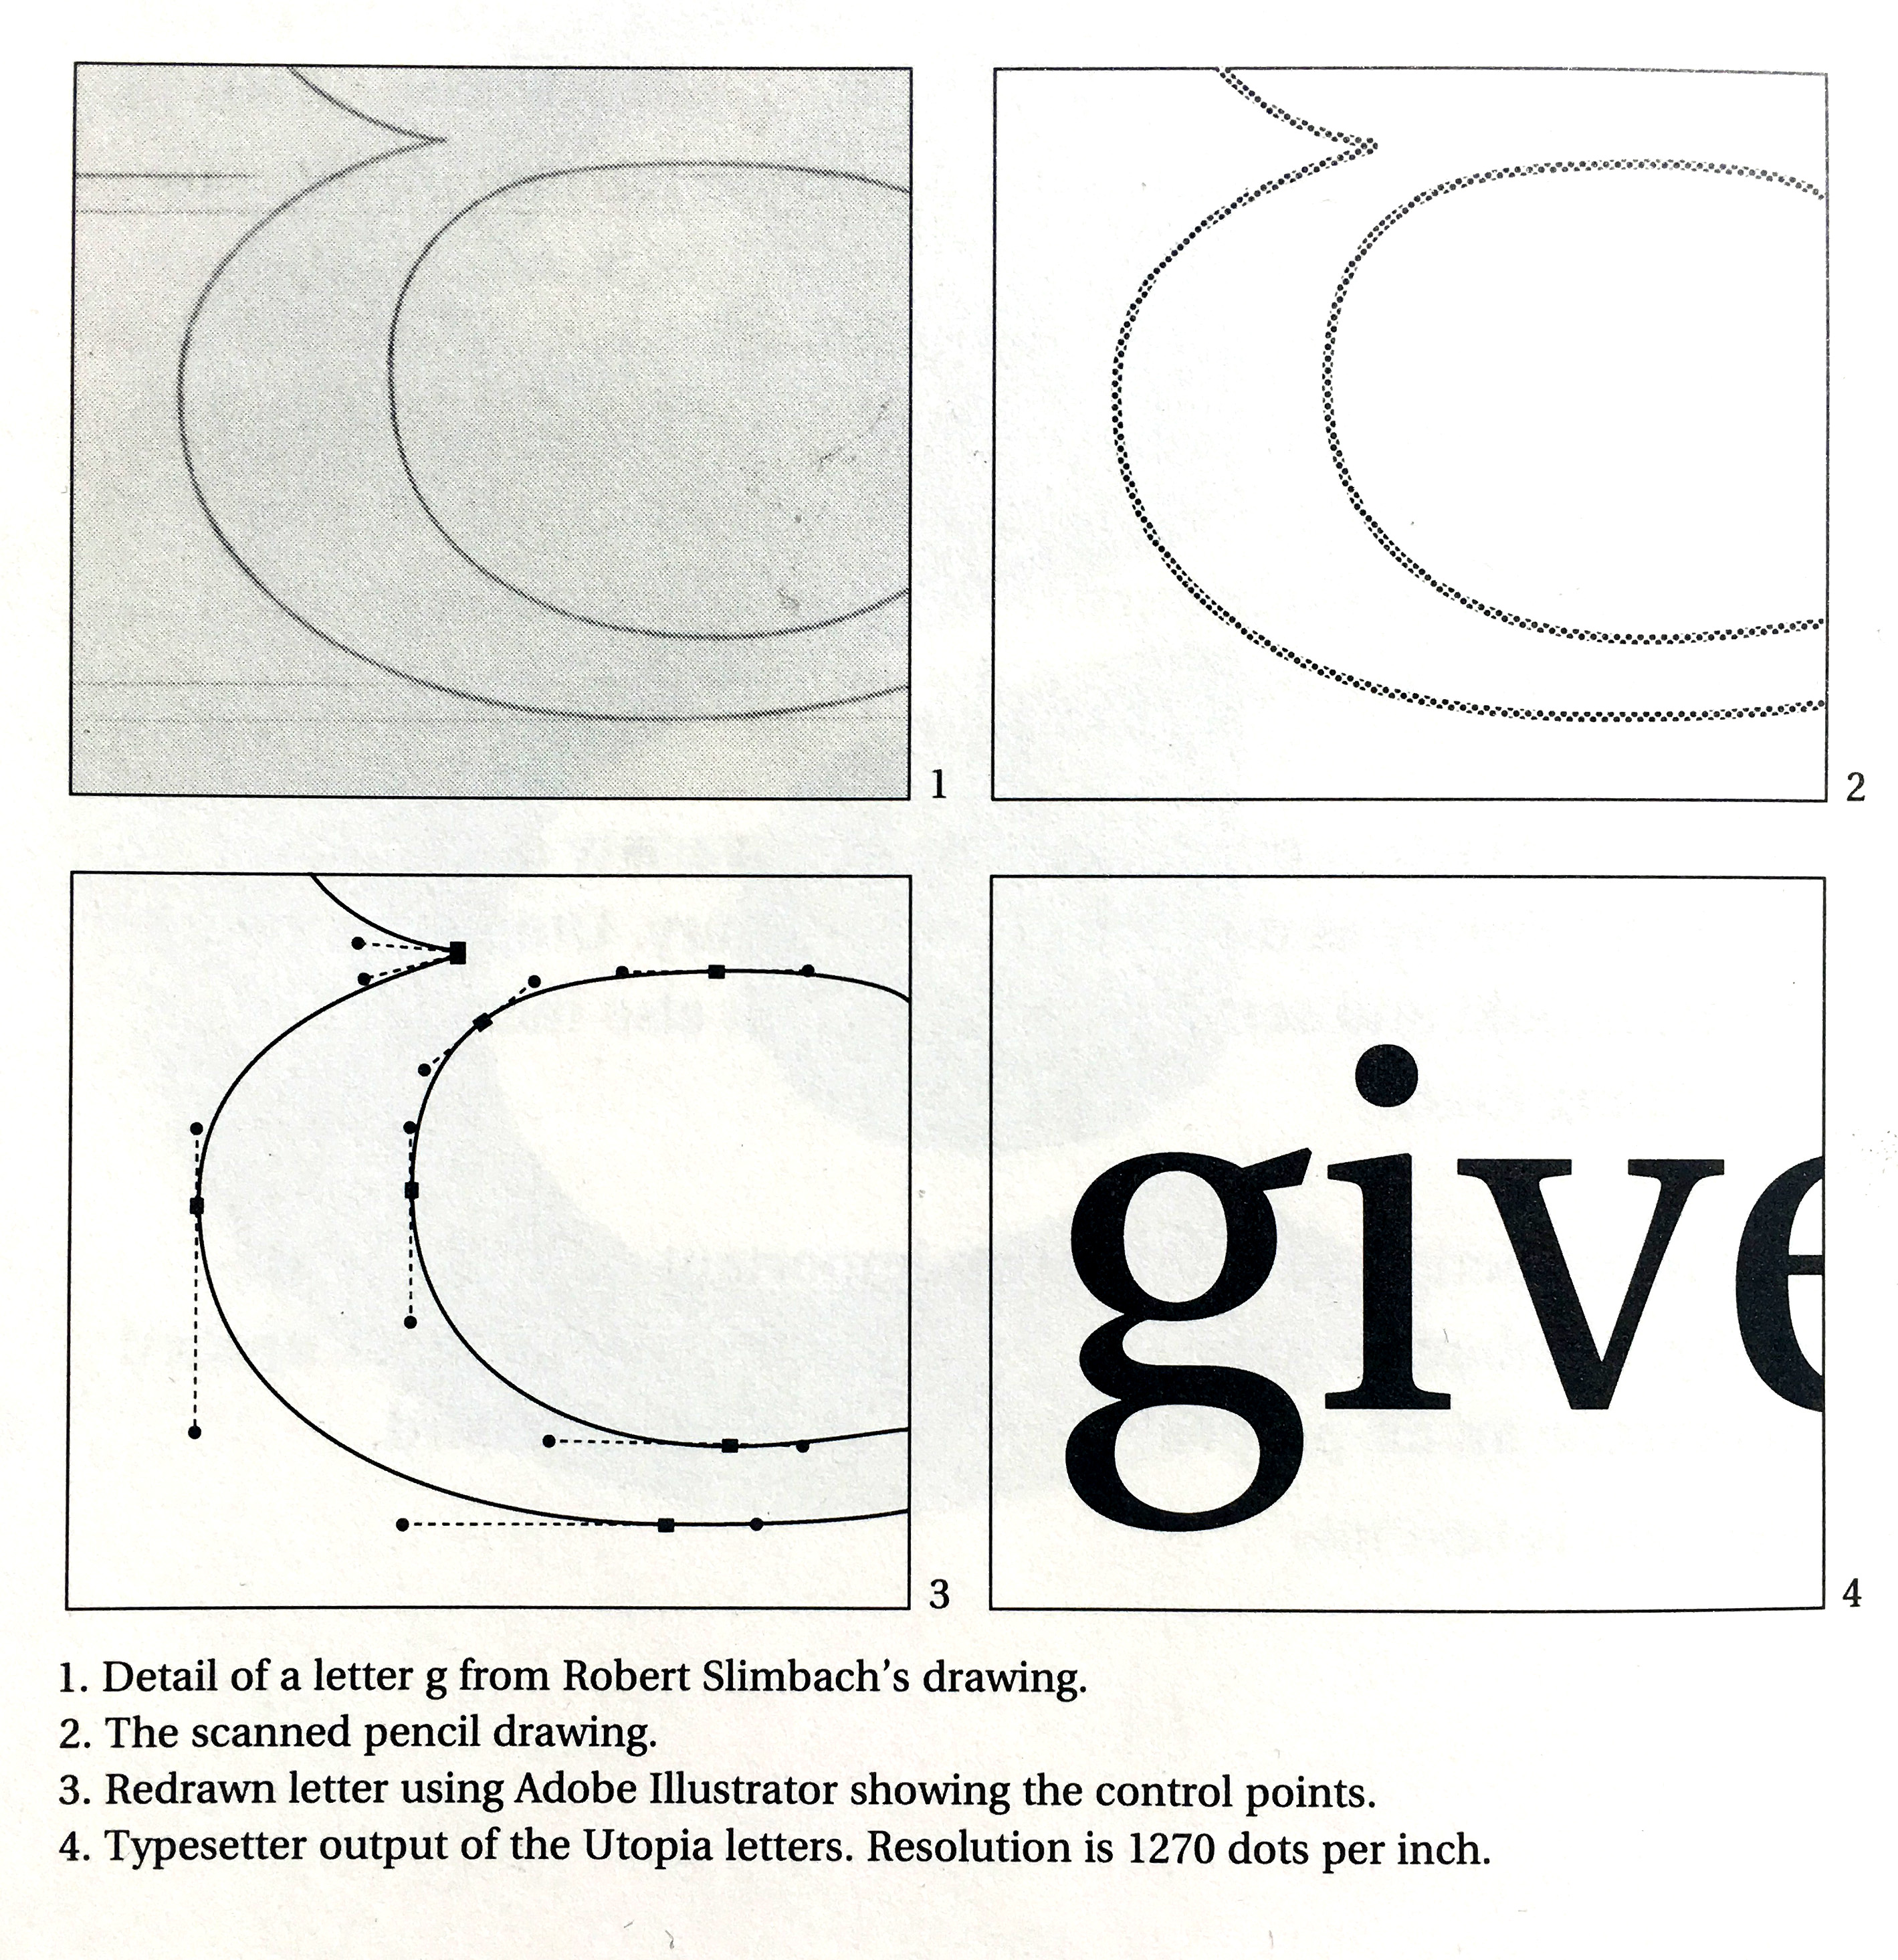 Slimbach's 1989 instructions for using Illustrator in type design.